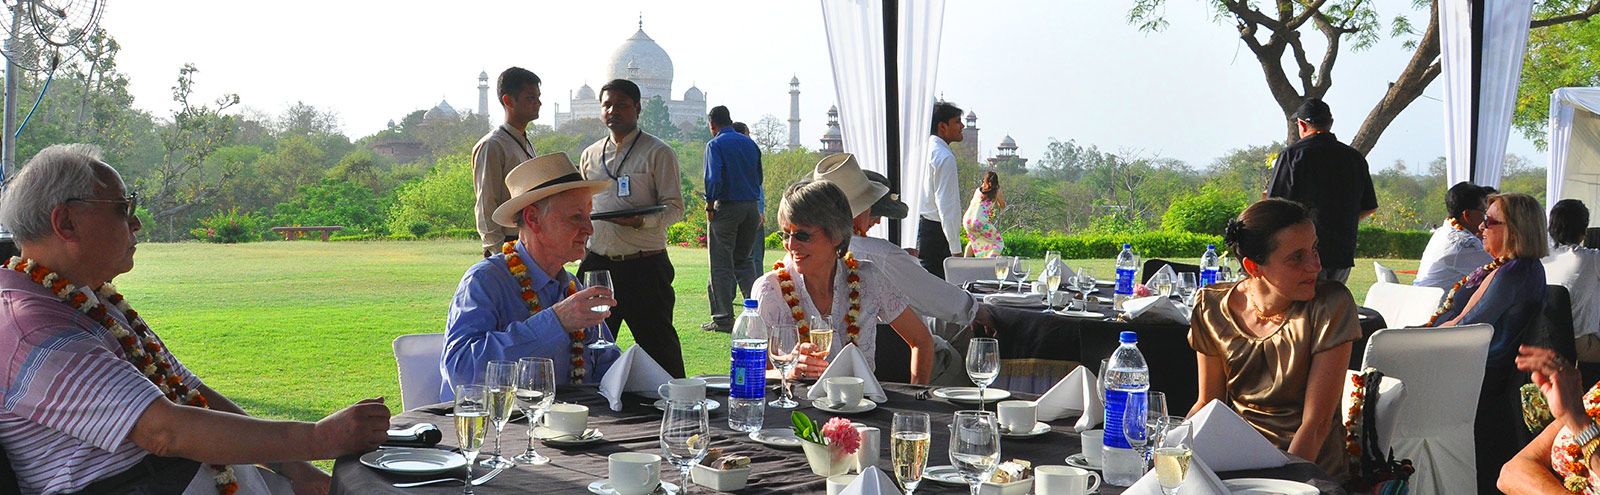 the maharajaexpress Champange breakfast overlooking Taj Mahal